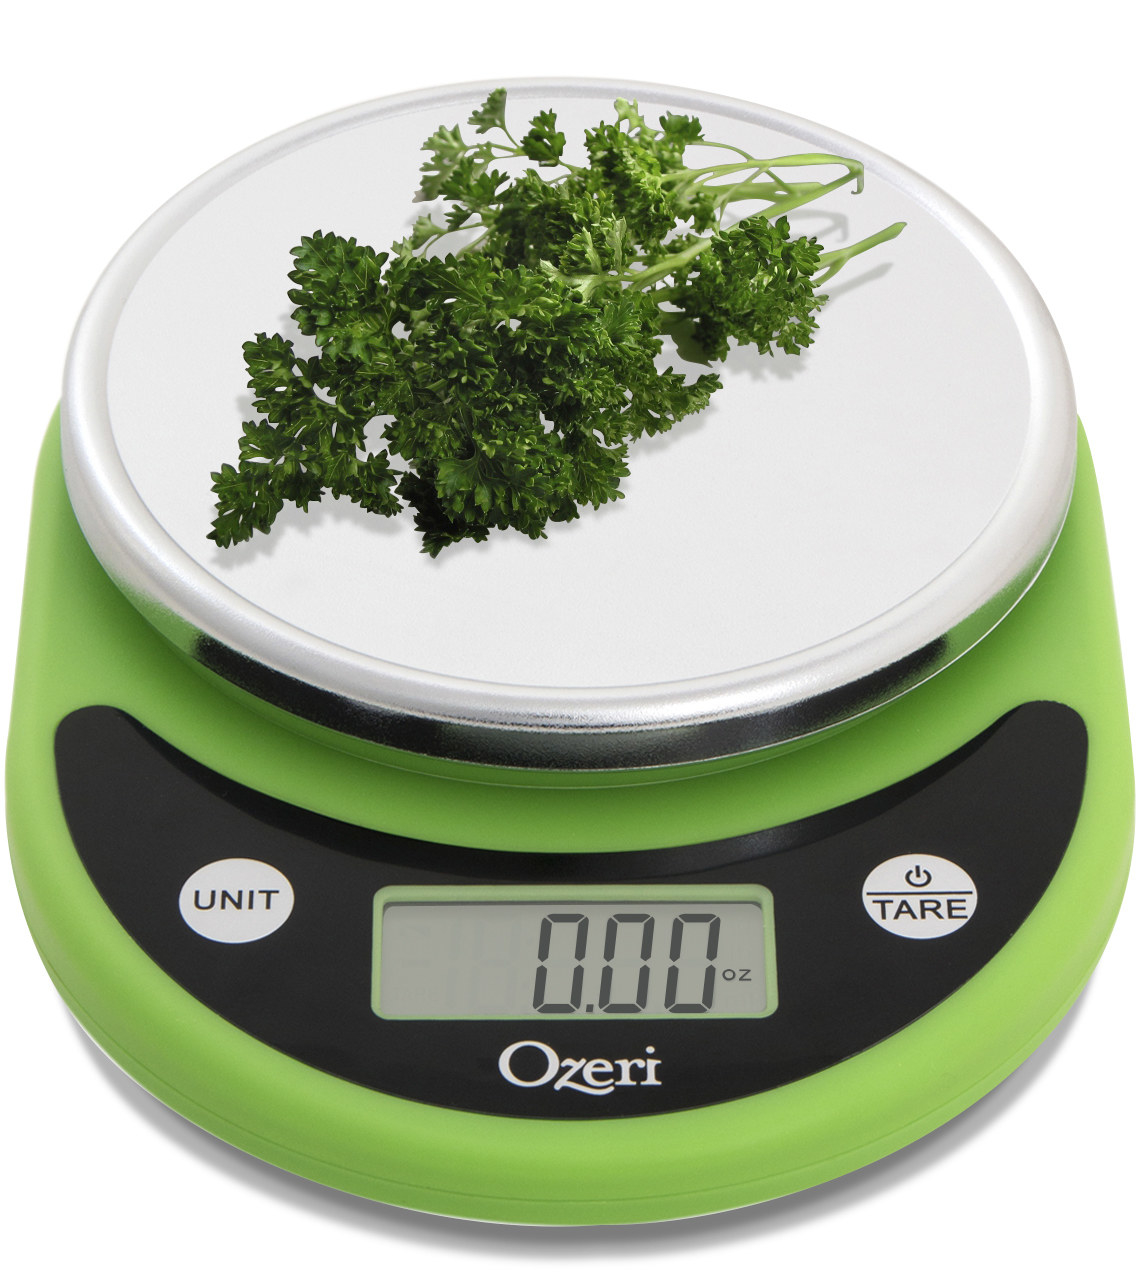 Green kitchen scale with silver covered weighing platform and parsley